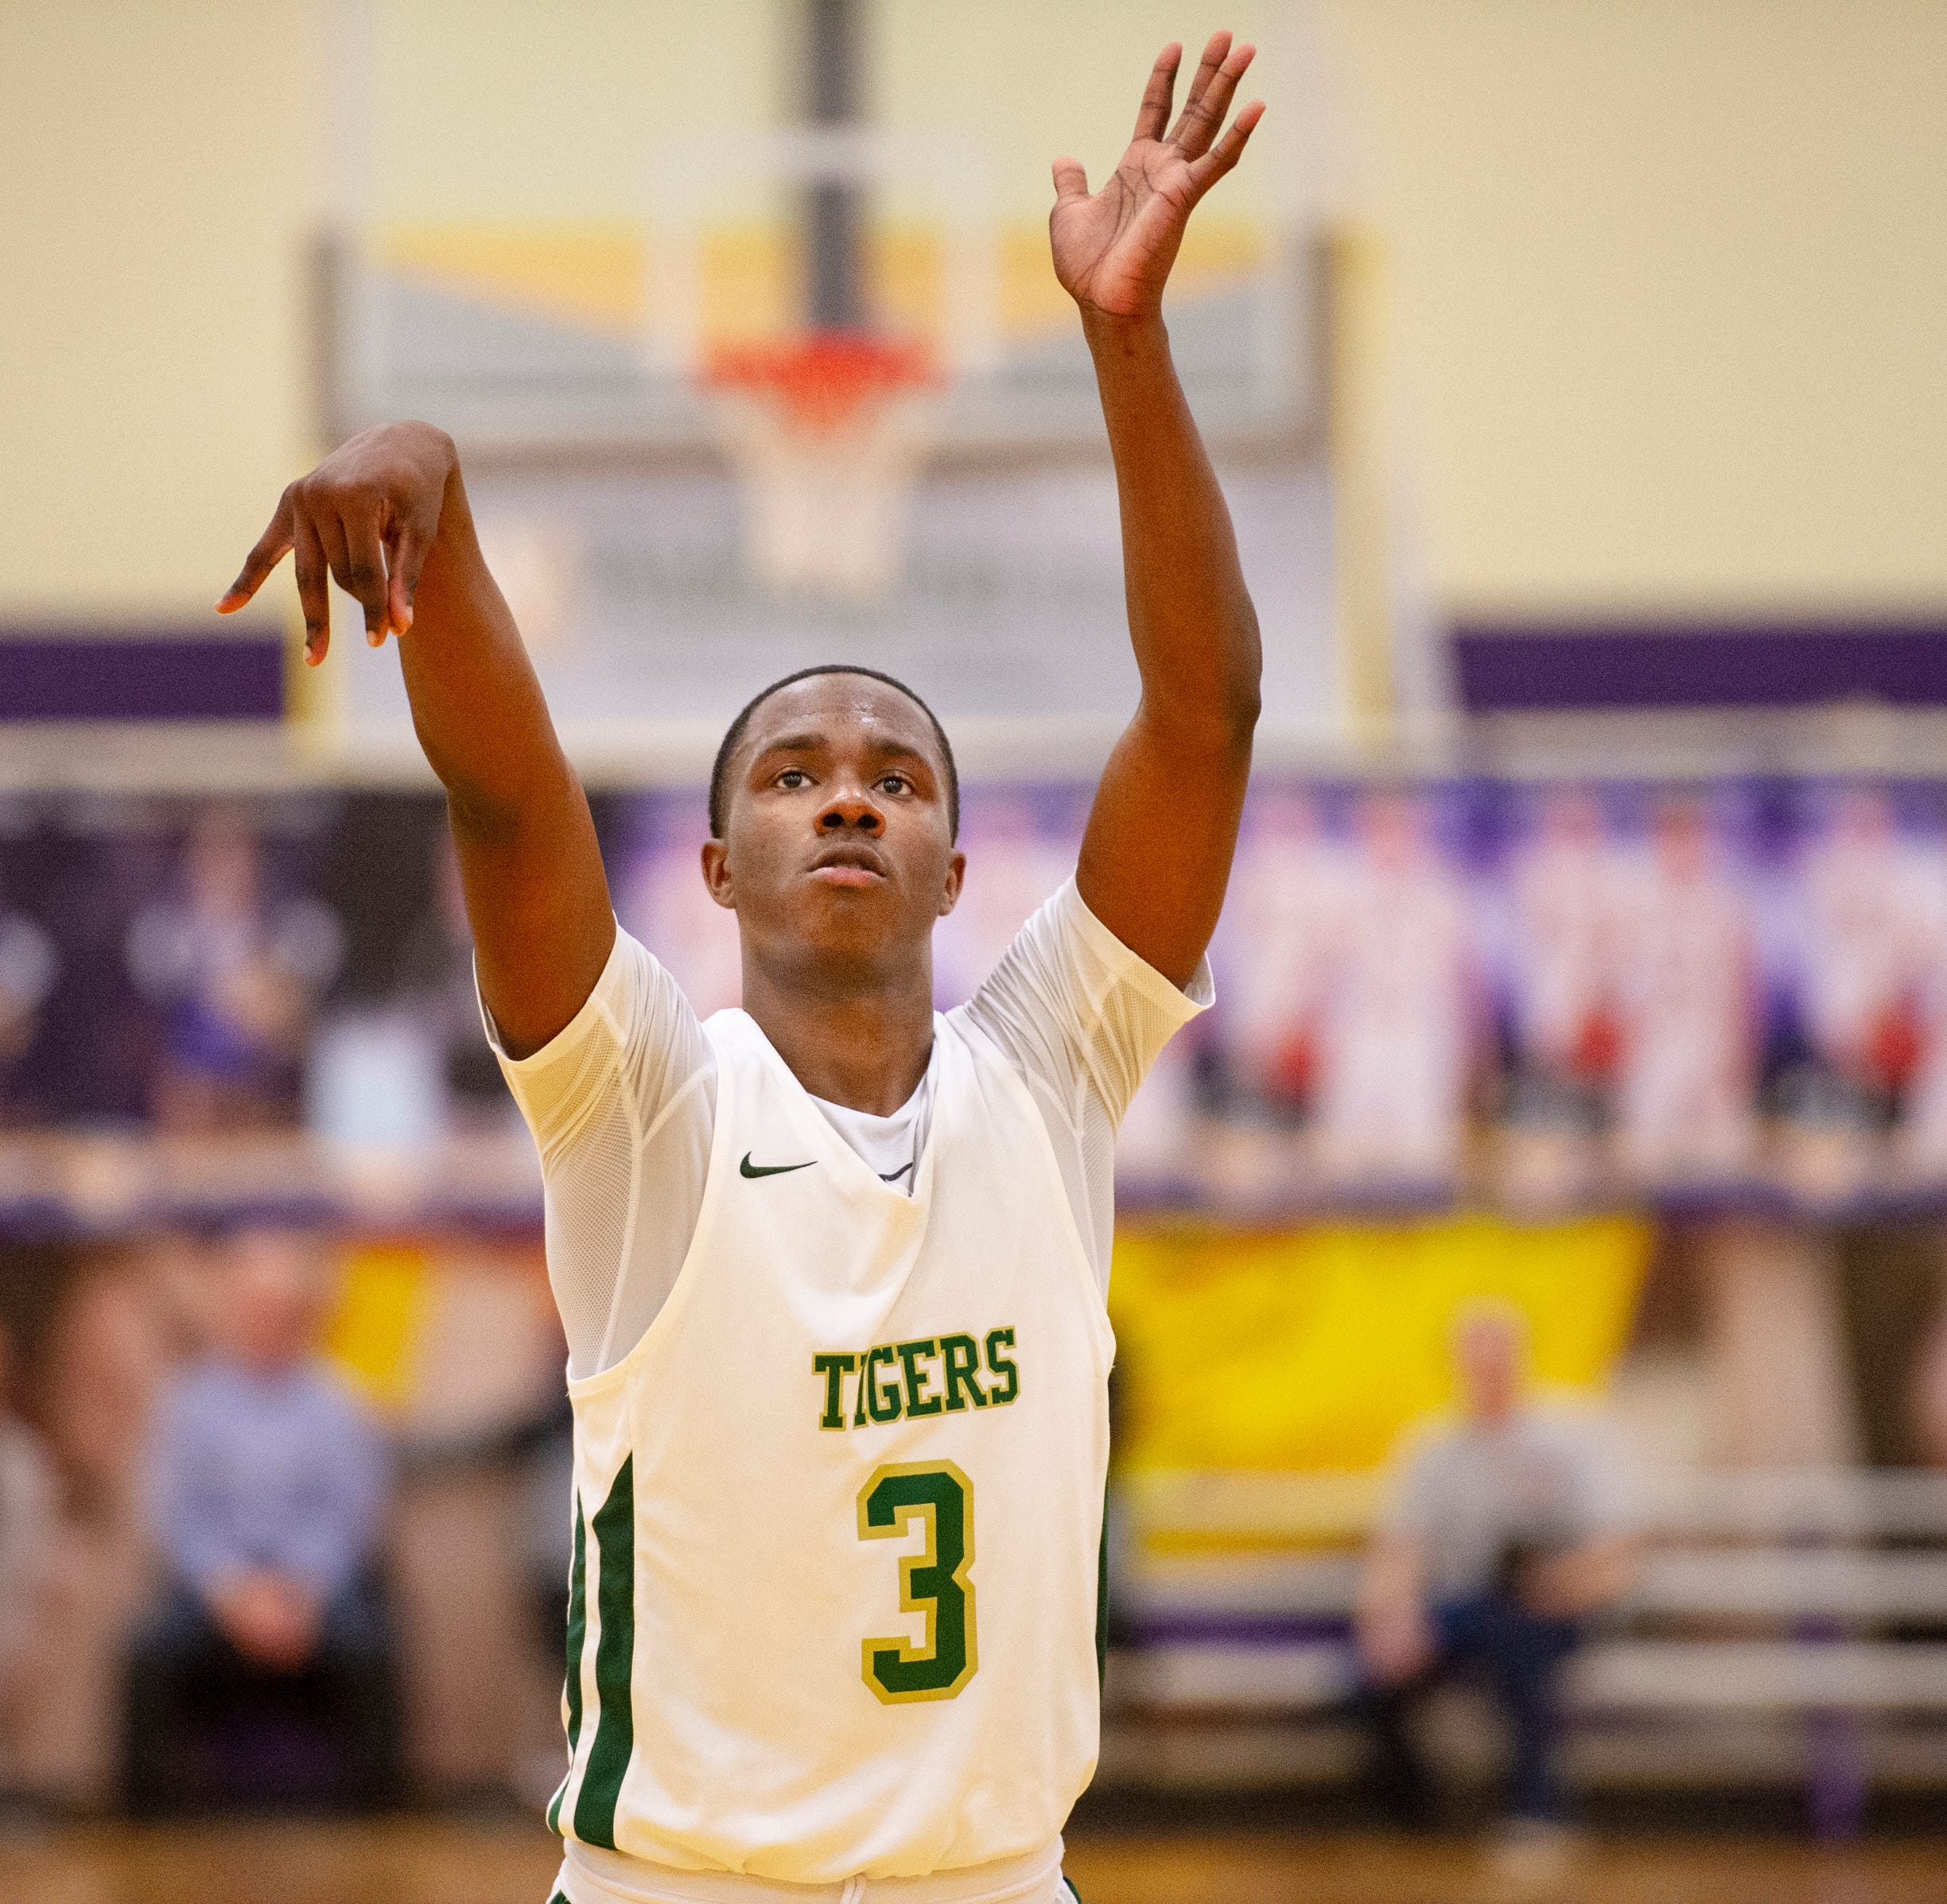 Indianapolis Crispus Attucks junior Sincere McMahon (3) shoots a free-throw late in the game during the second half of an IHSAA Class 3A Boys' Basketball Sectional semifinal game at Guerin Catholic High School in Noblesville, Ind., Friday, March 1, 2019. Indianapolis Crispus Attucks won 59-56.